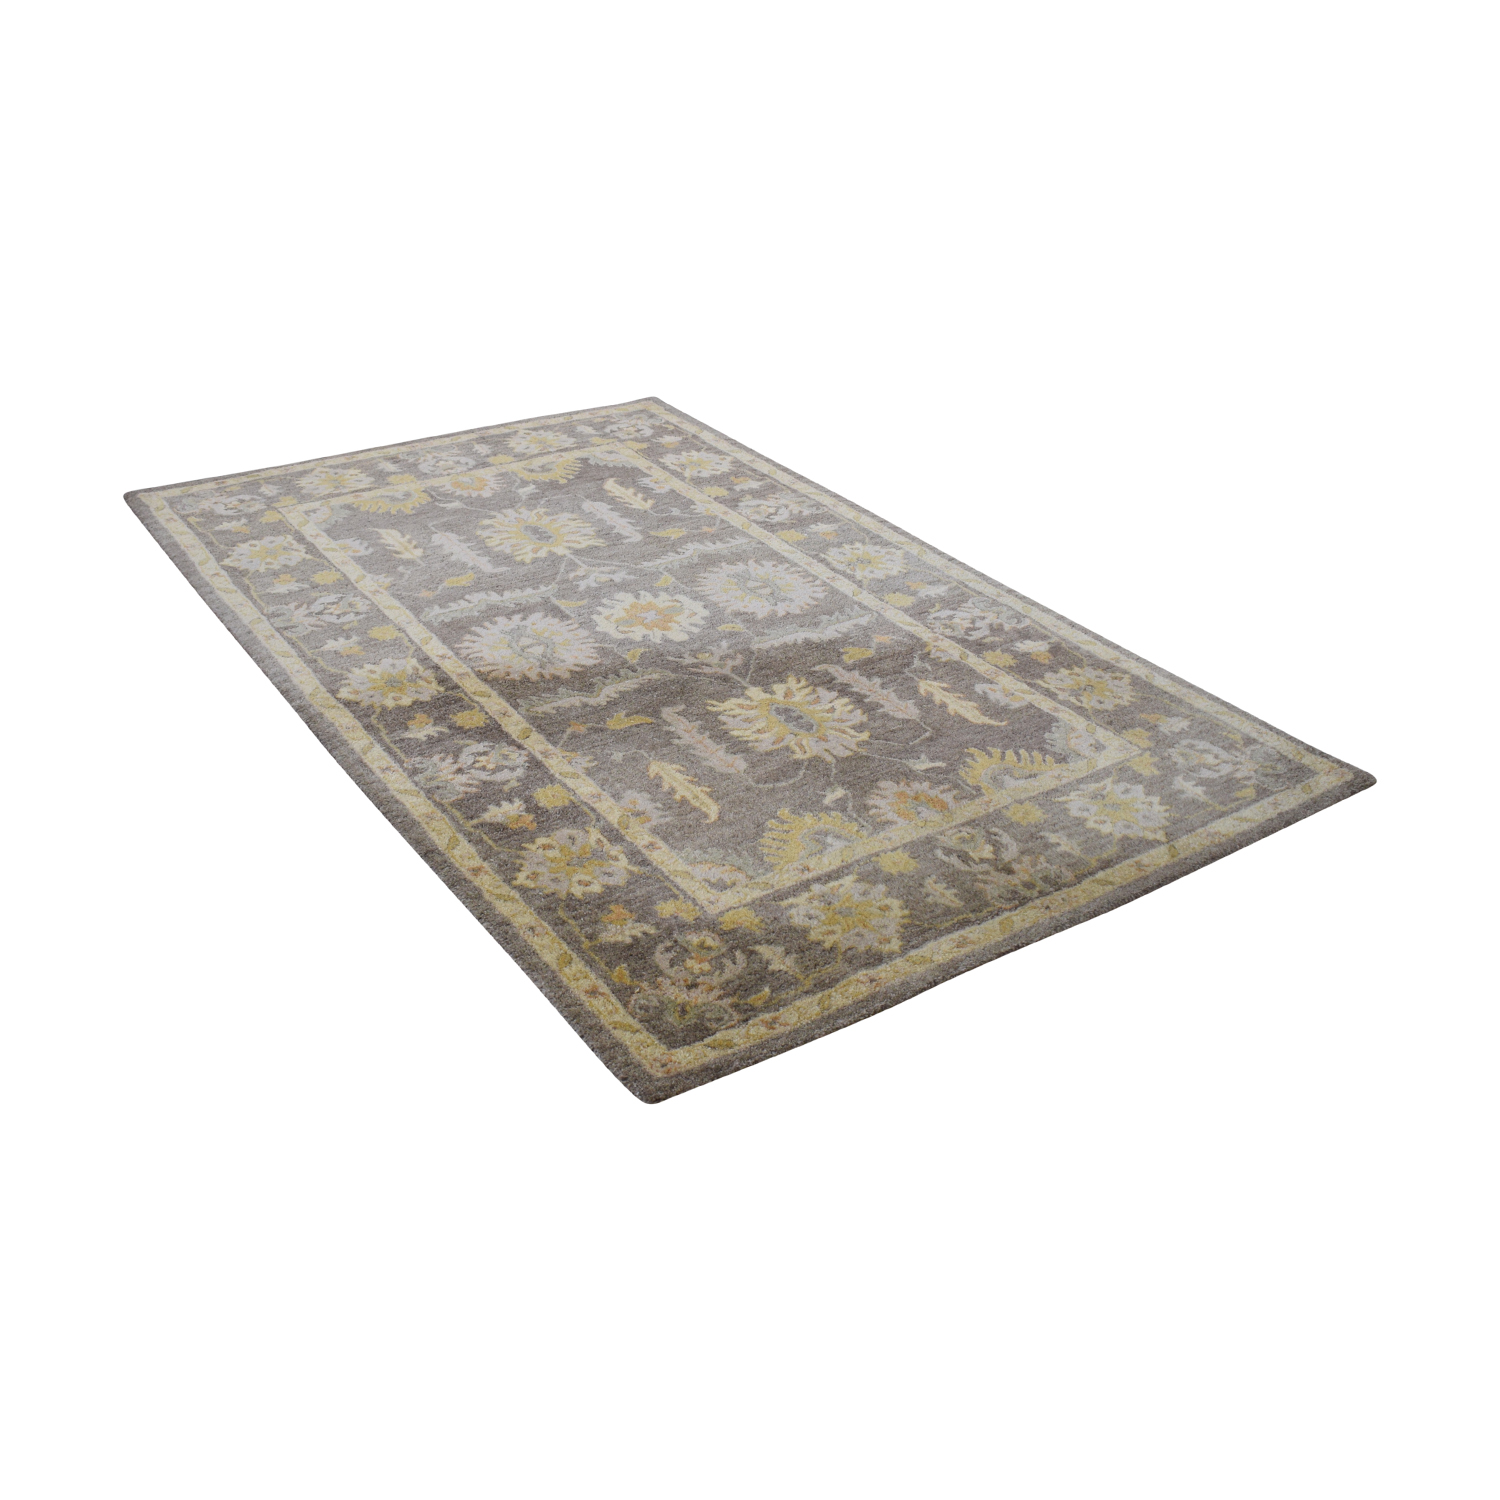 buy Pottery Barn Hastings Beige Persian Style Rug Pottery Barn